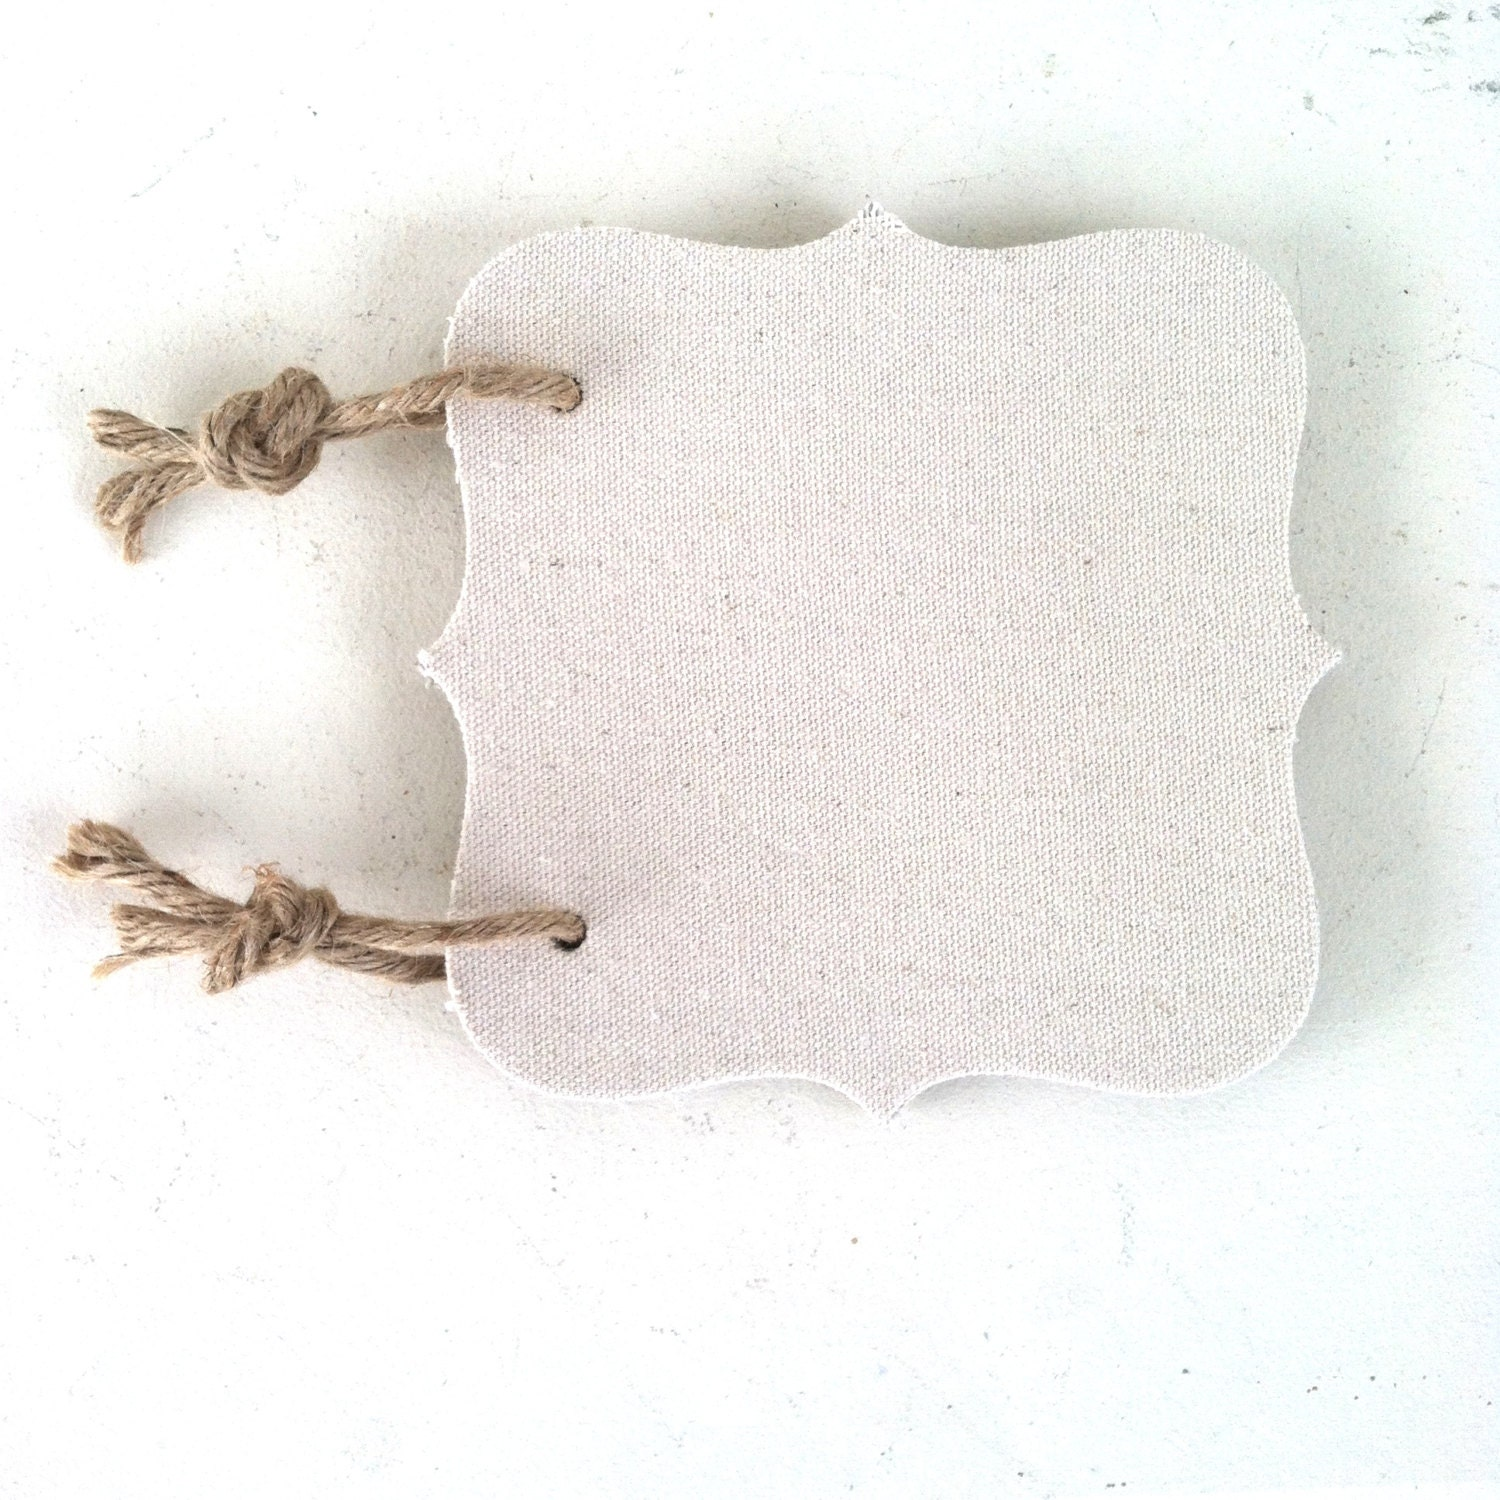 Chipboard Journal Square 4 Page ~ Mini Album Paper Twine Shabby Chic Canvas Drop Cloth Frame Nautical Rope - CottageAndSprout